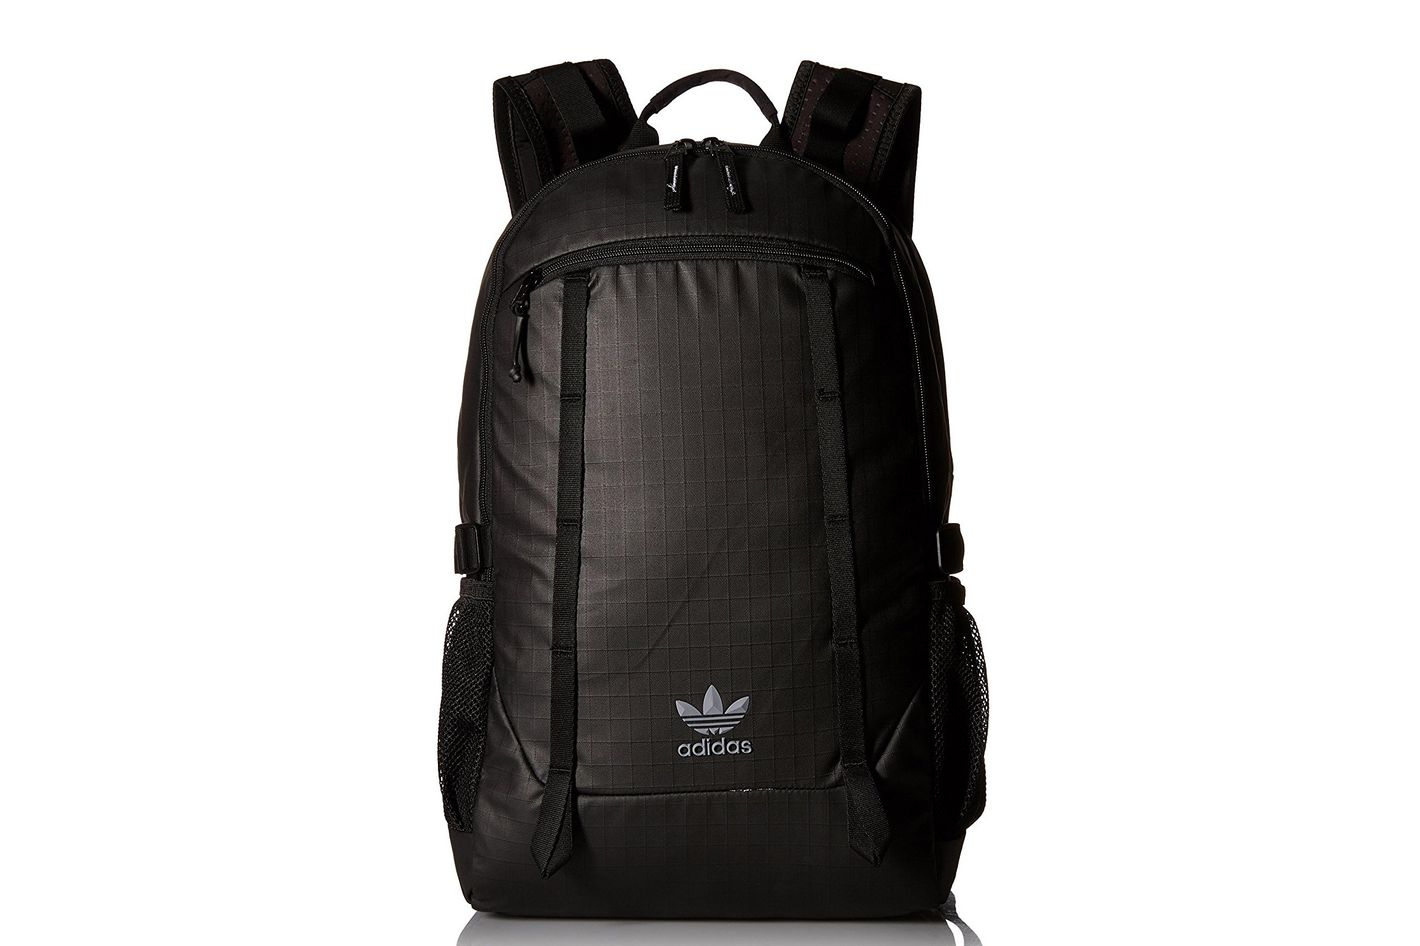 Adidas Originals Create Backpack